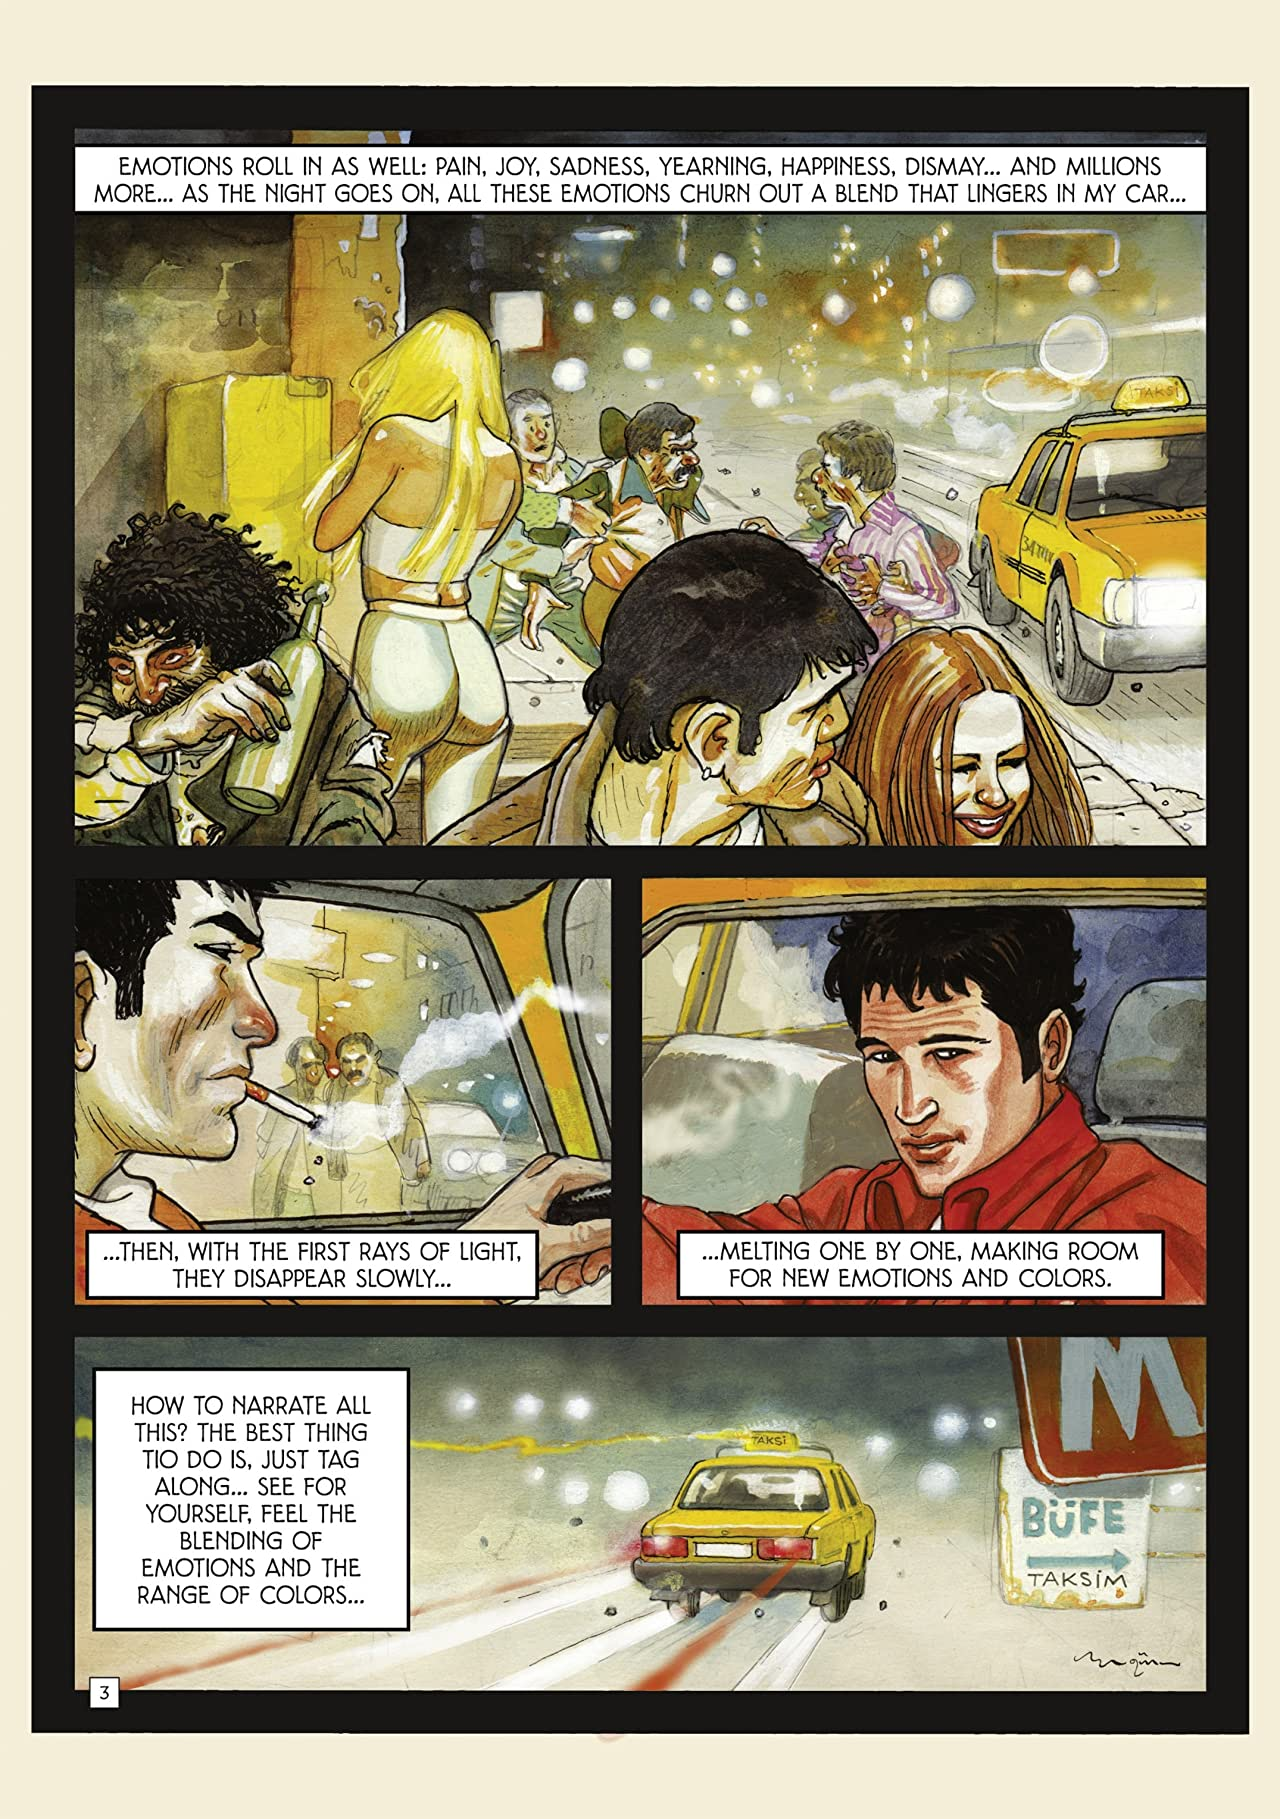 Taxi Tales Vol. 1: The Fragrant Lady